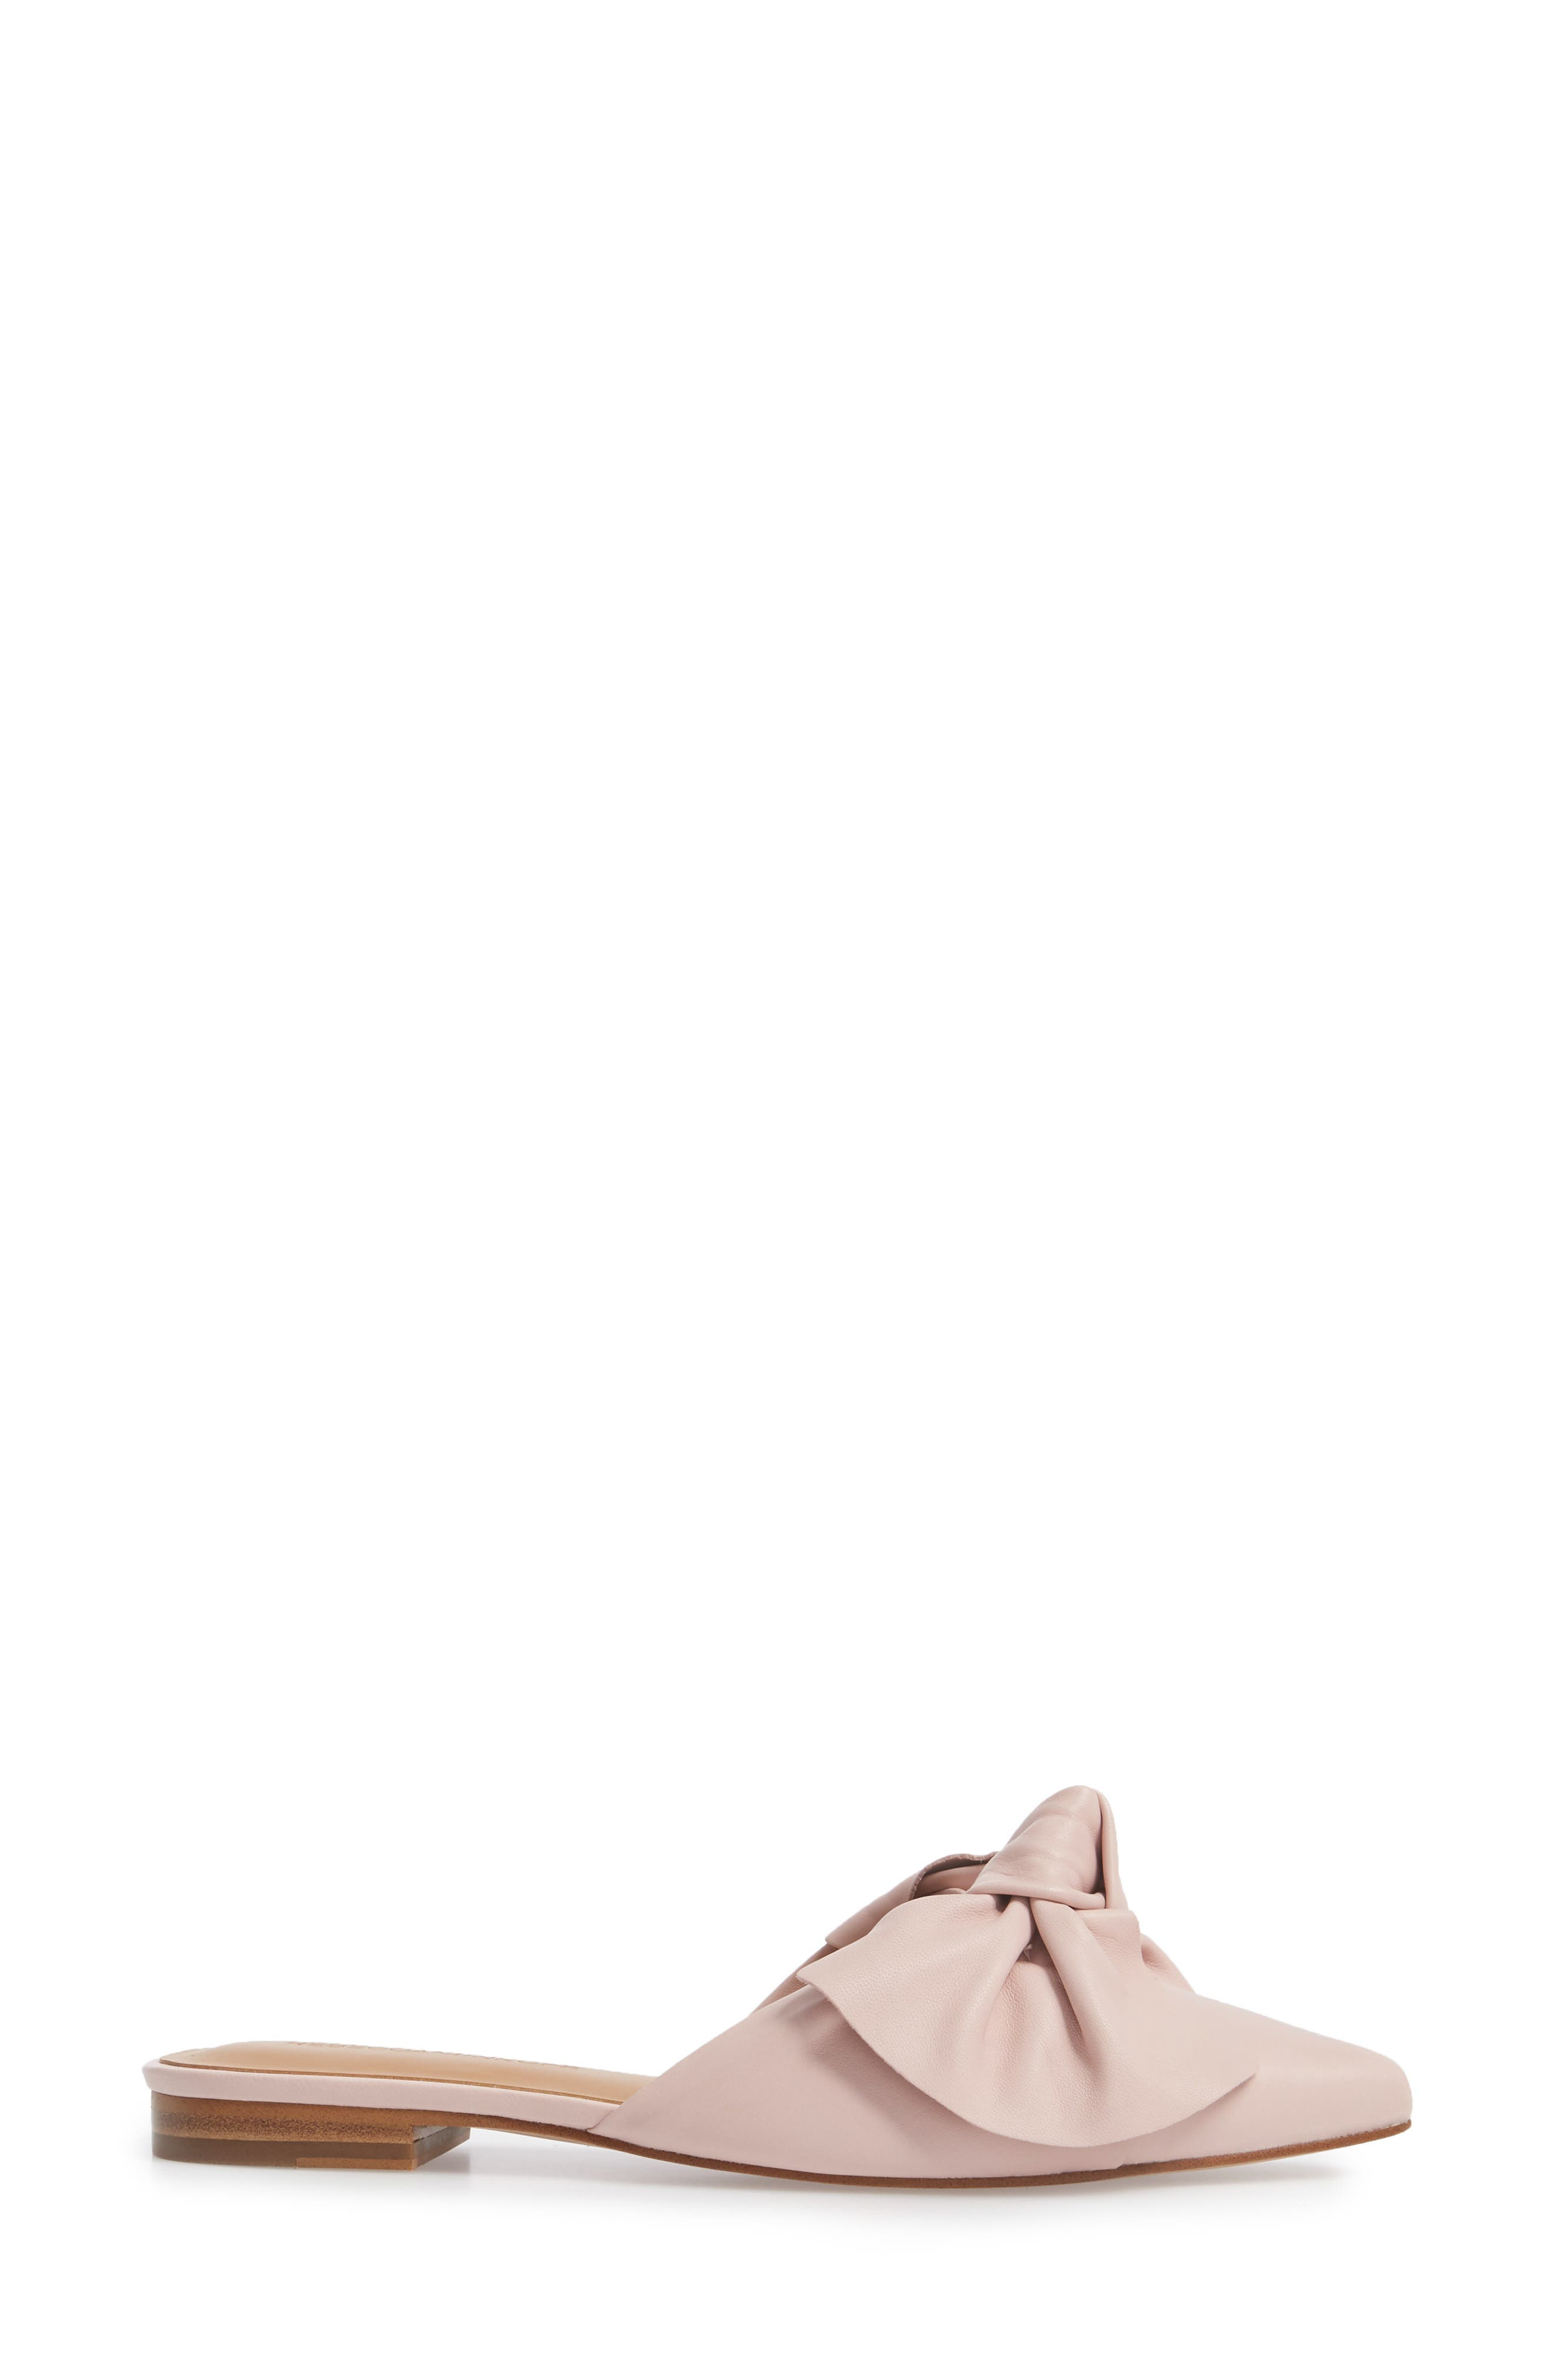 Alexis Bow Mule,                             Alternate thumbnail 3, color,                             MILLENNIAL PINK LEATHER